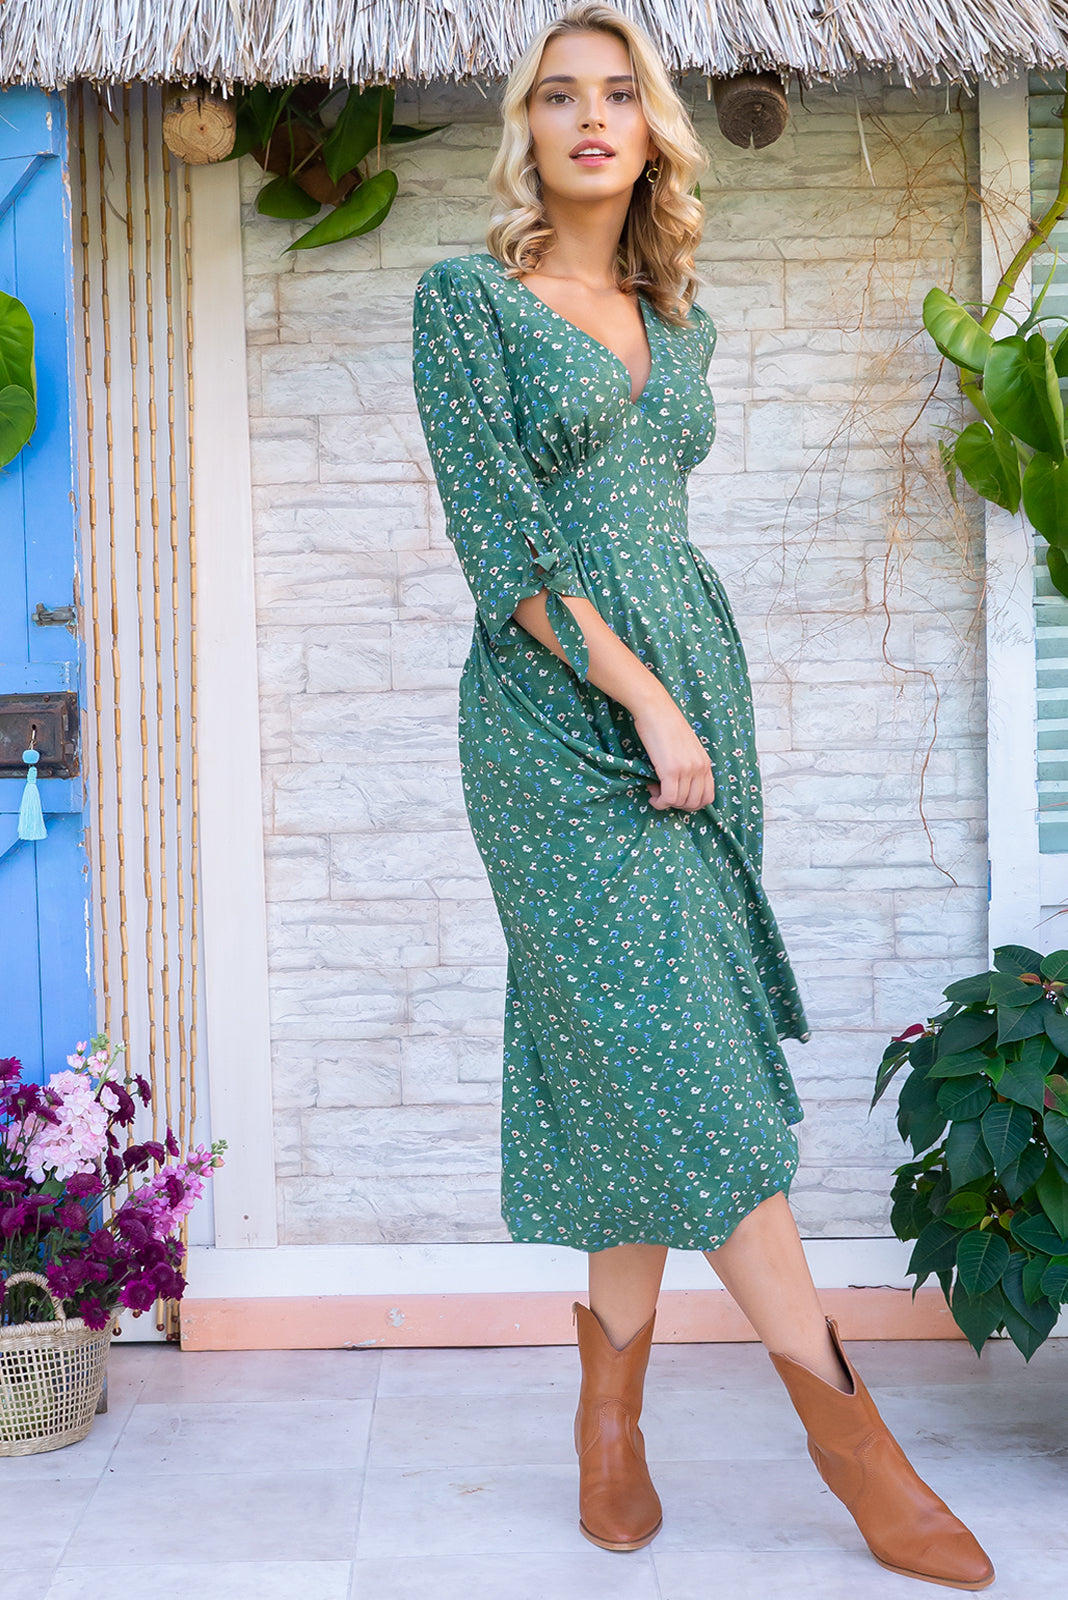 Henrietta Field Flowers Midi dress features a vintage inspired fitted basque waist and elasticated waist with a midi sleeve and deep v neck the fabric is a soft woven rayon in a soft green ditzy floral print design